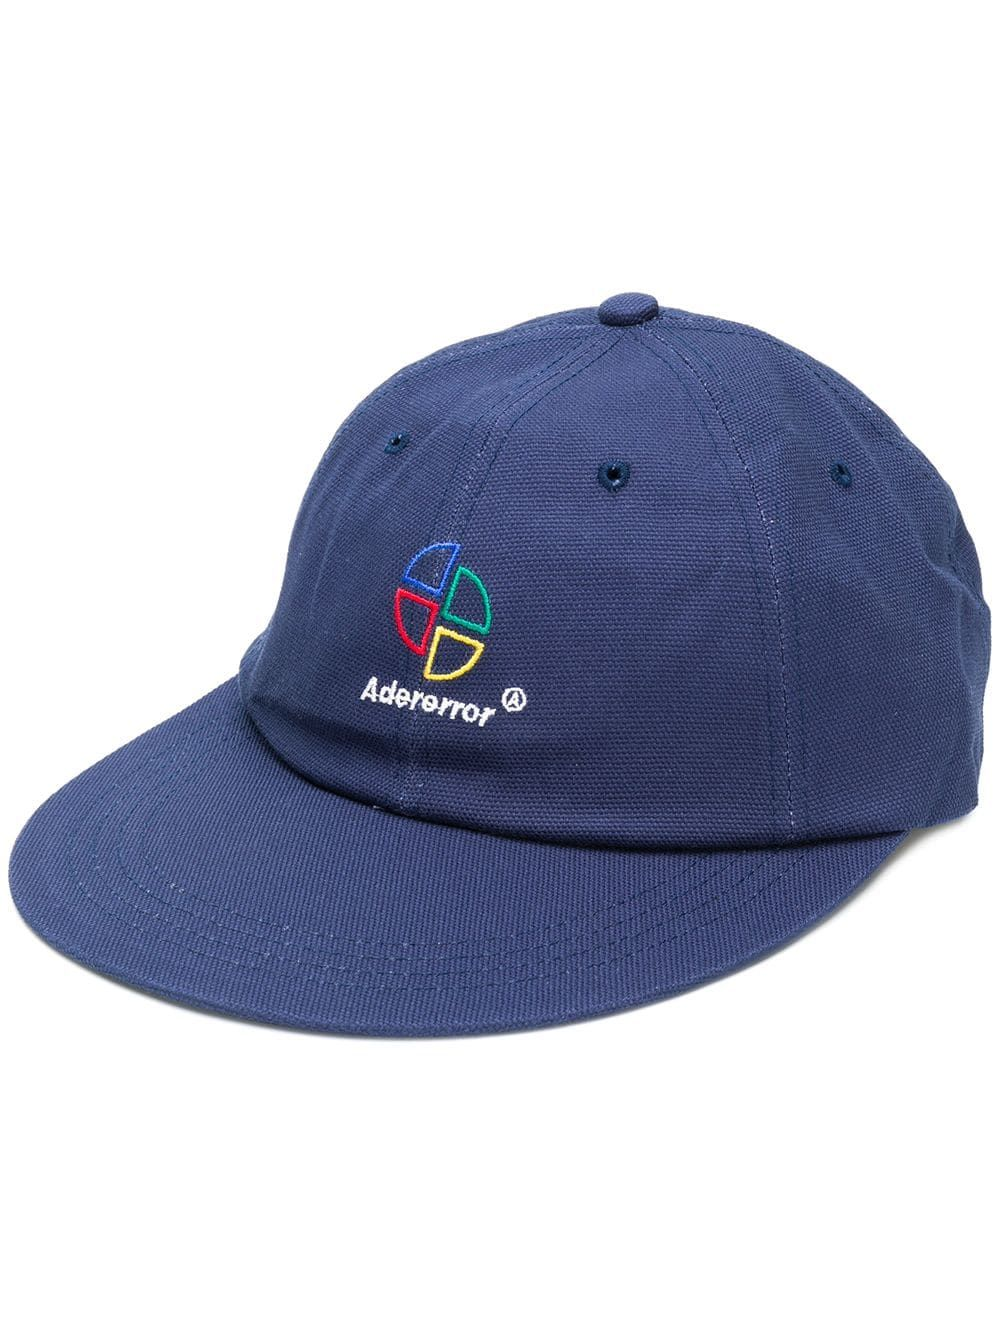 8949e6ae000f9 Ader Error embroidered straight peak cap